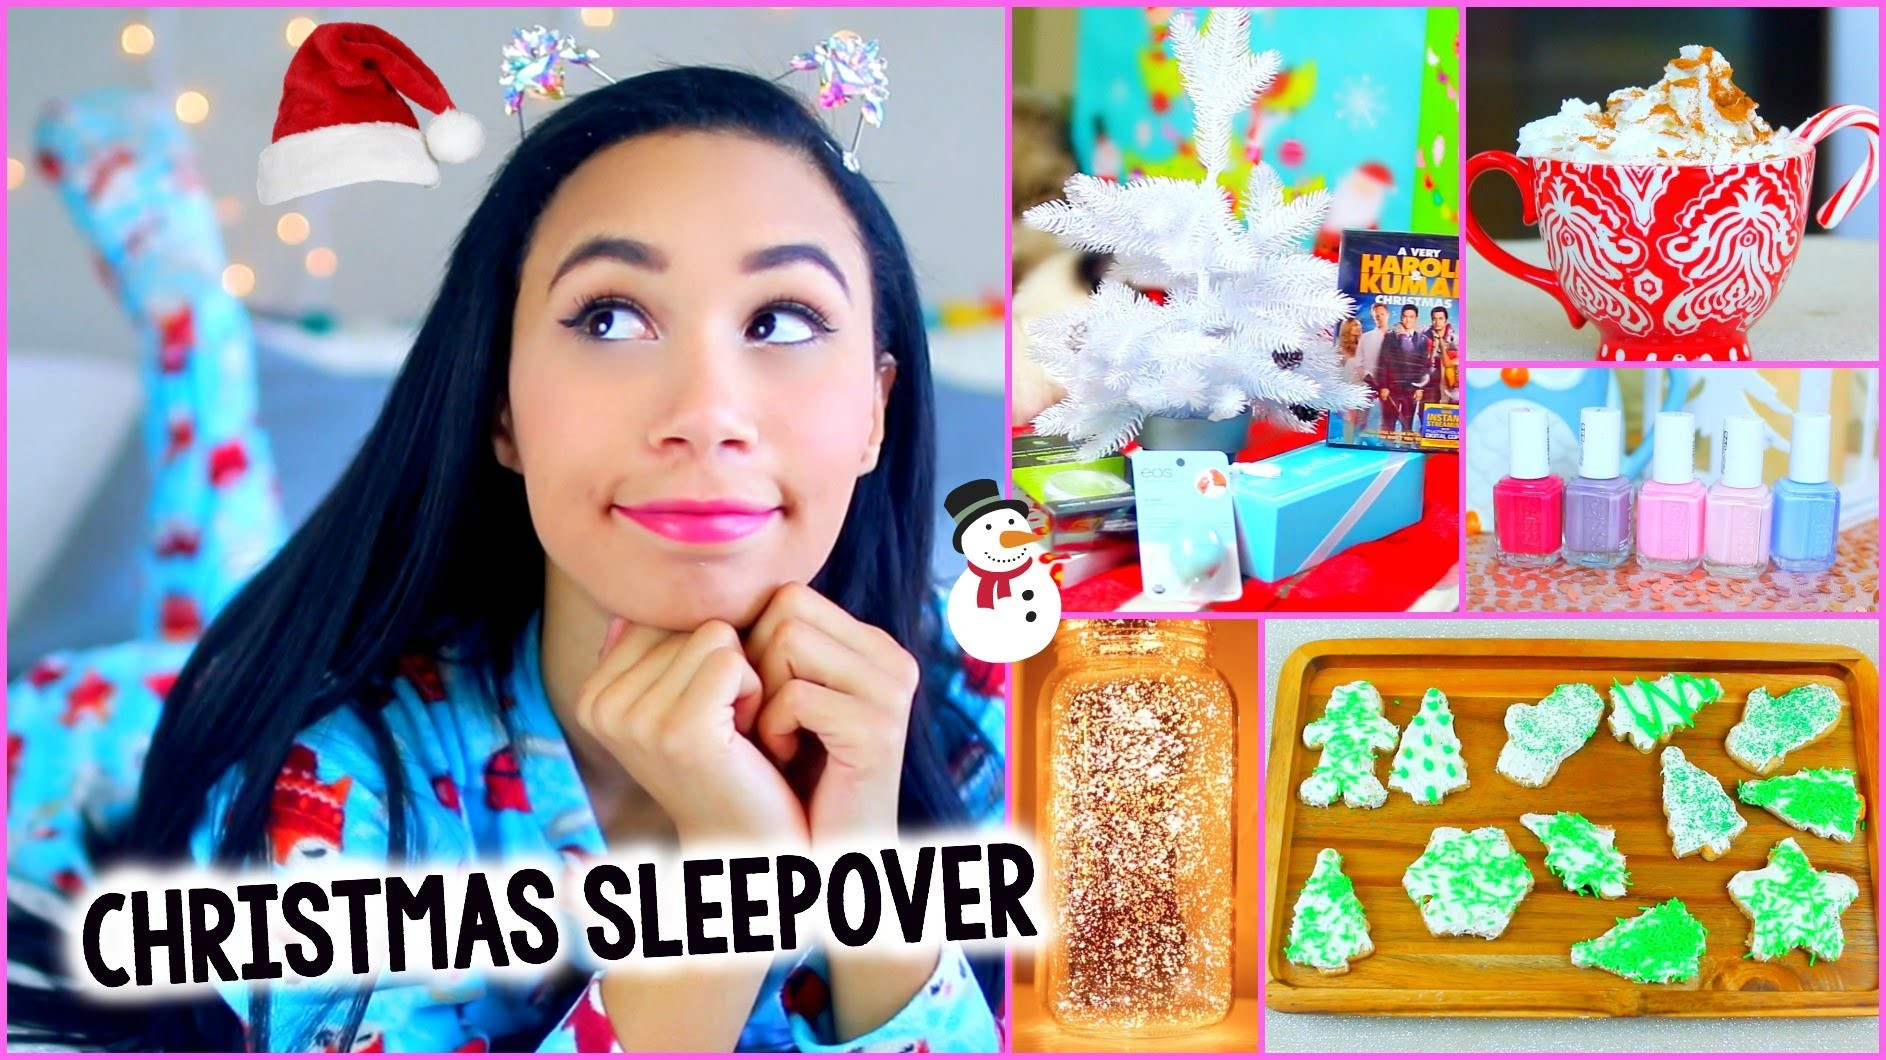 What To Do On Christmas! :Decor, Treats, Outfit + More for a DIY Holiday Sleepover!